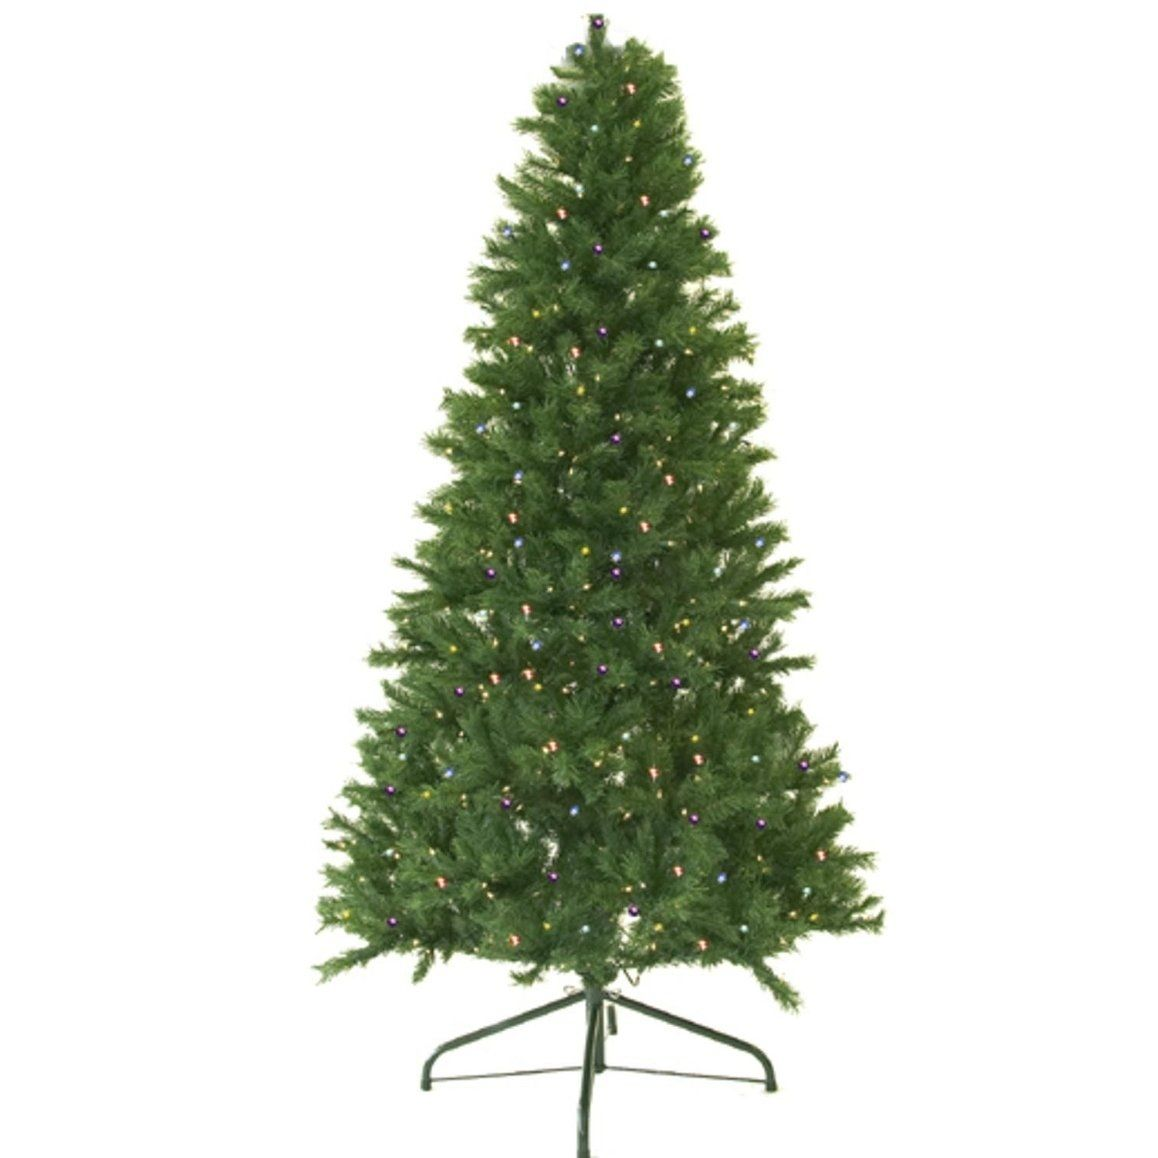 10 Pre Lit Canadian Pine Green Artificial Xmas Tree Multi Led Lights 10 Foot Pre Lit In 2019 Christmas Tree Clear Lights Pine Christmas Tree Artificial Xmas Trees